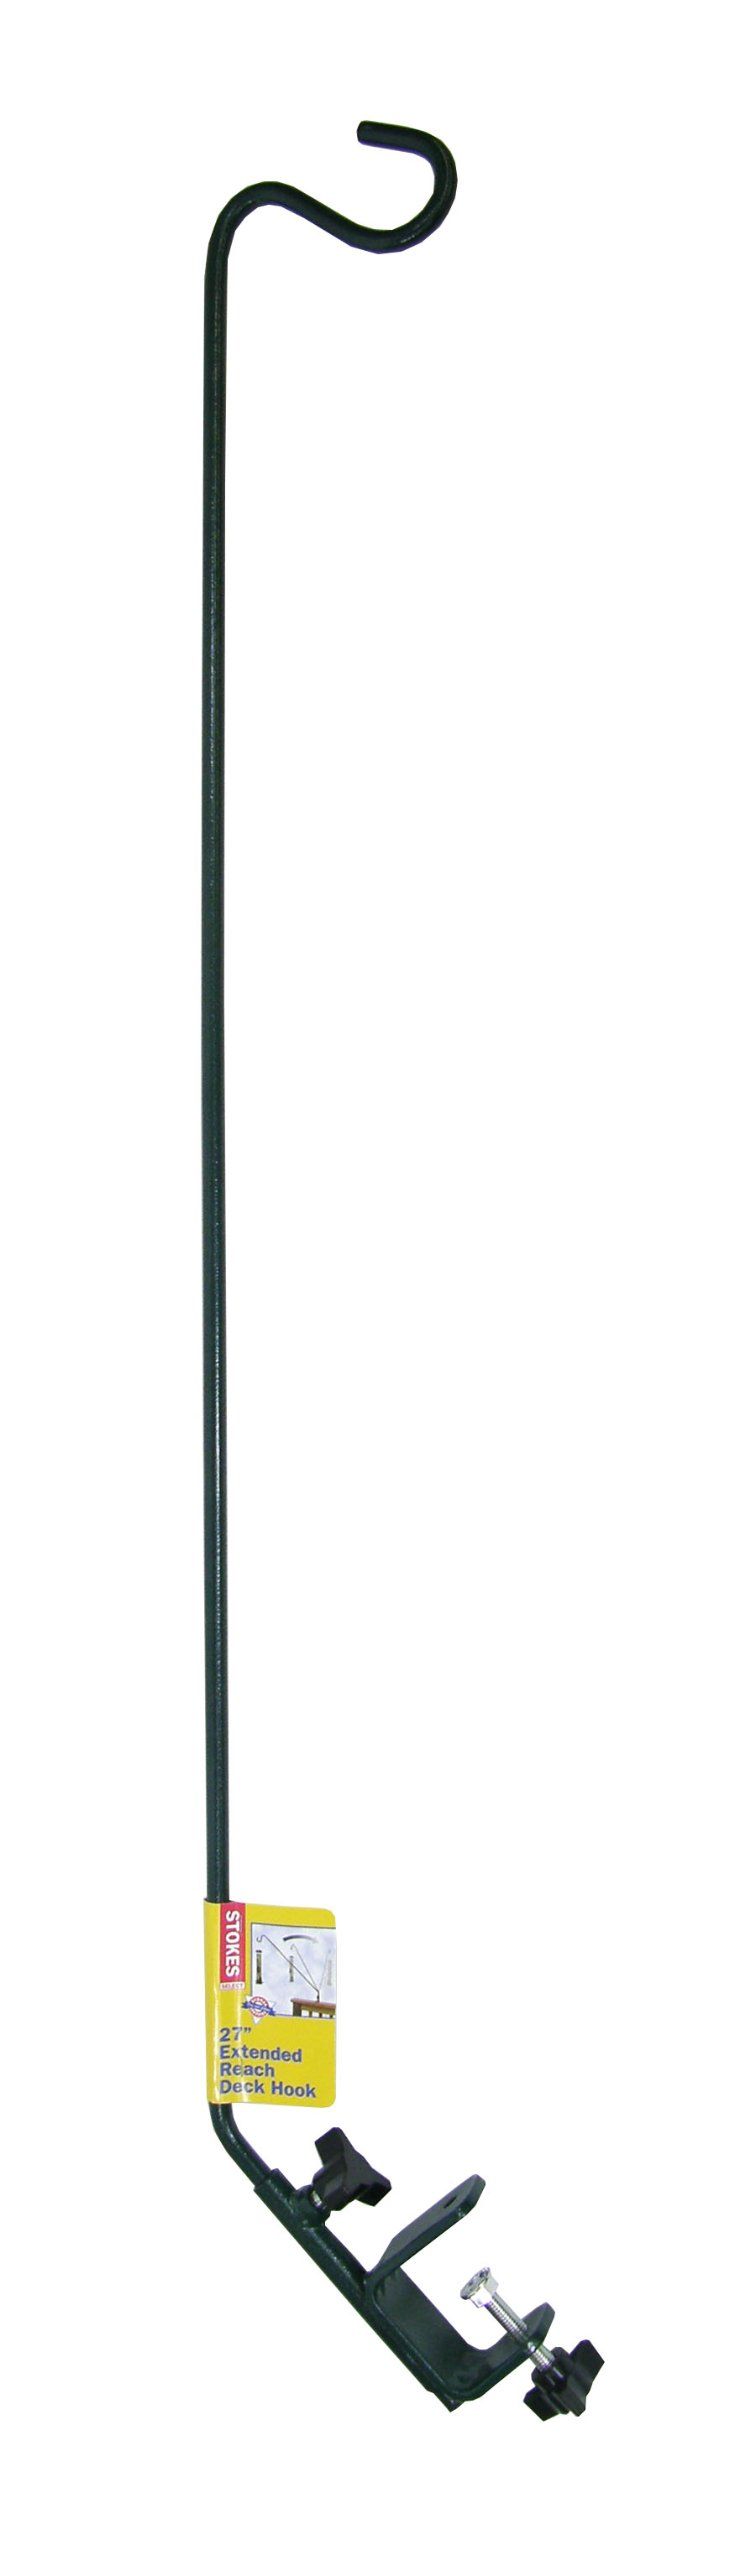 Stokes Select 27-Inch Metal Extended Reach Deck Hook with 360 Degree Swing for Bird Feeders